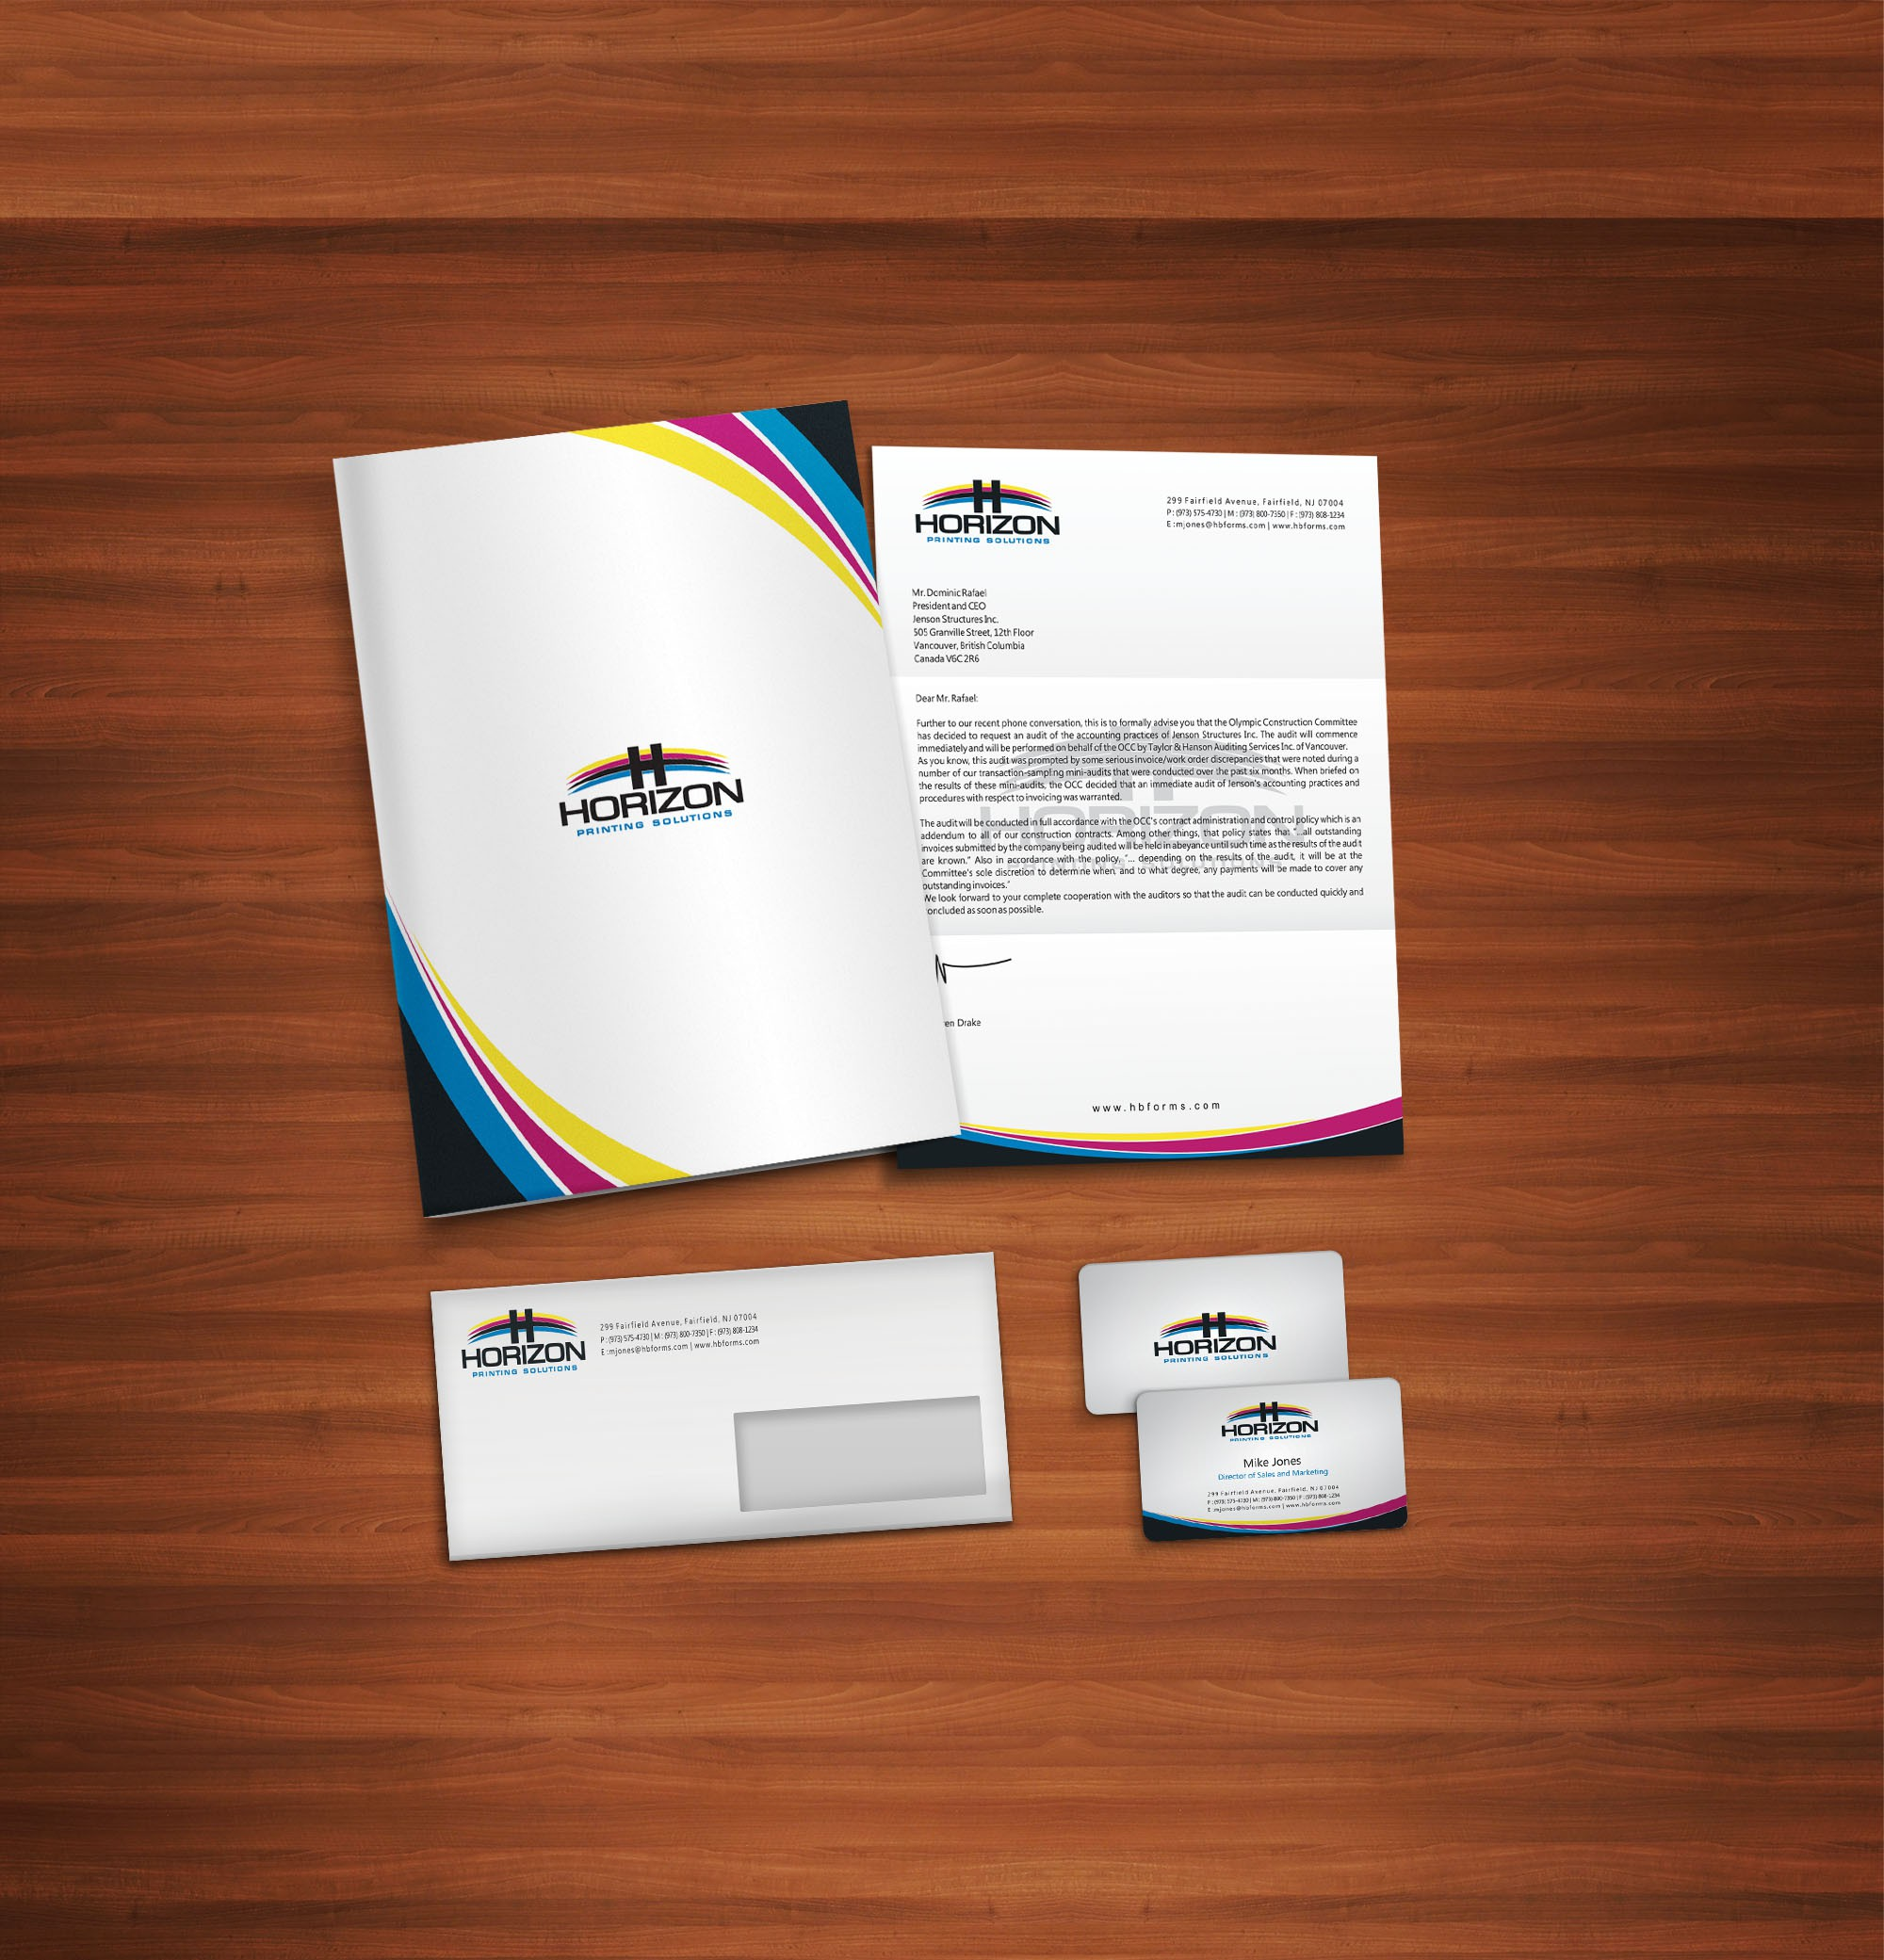 Horizon Printing Solutions needs a new stationery